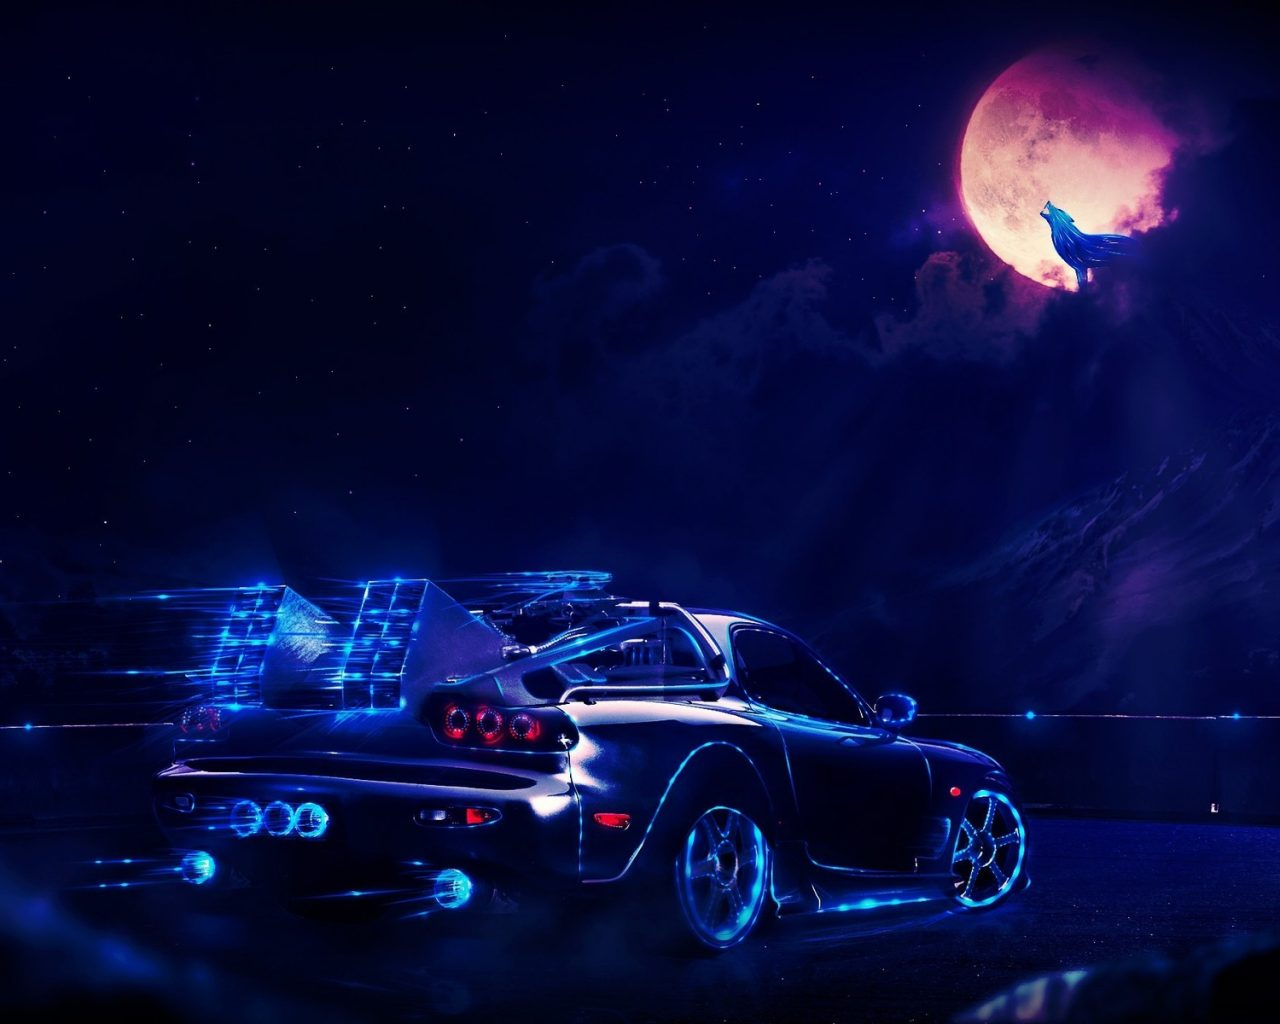 Universe Wallpaper Iphone X Back To The Future Delorean At Night Hd Wallpaper